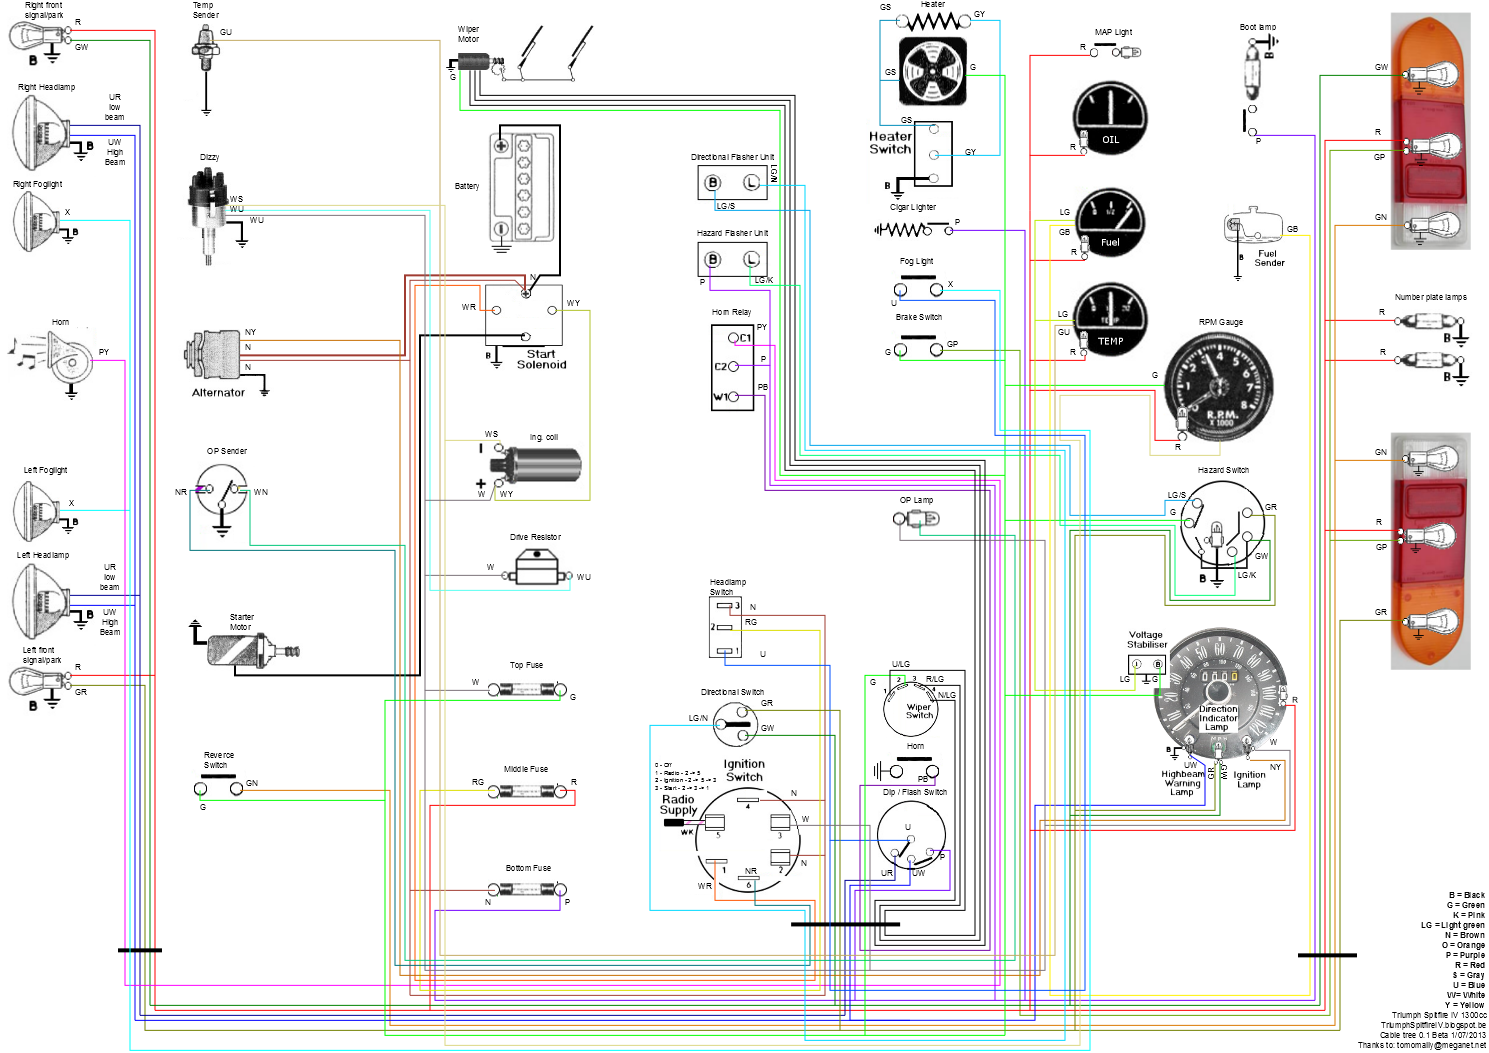 spitfire iv wiring diagram spitfire mkiv wiring diagram how to library the triumph experience  at edmiracle.co